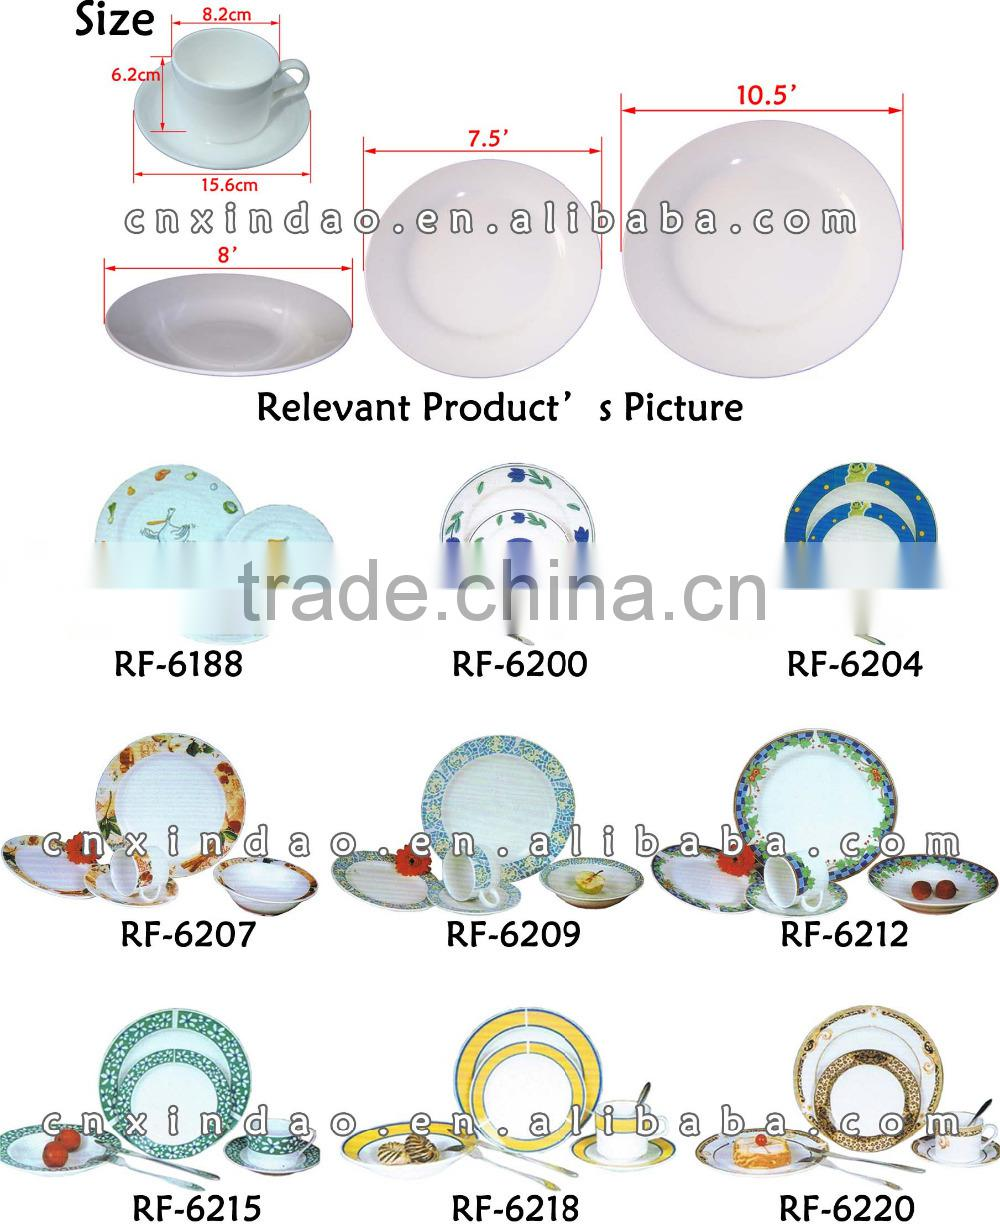 20pcs Round Shape Dailly Used Promotion Unbreakable Ceramic Dinner Set